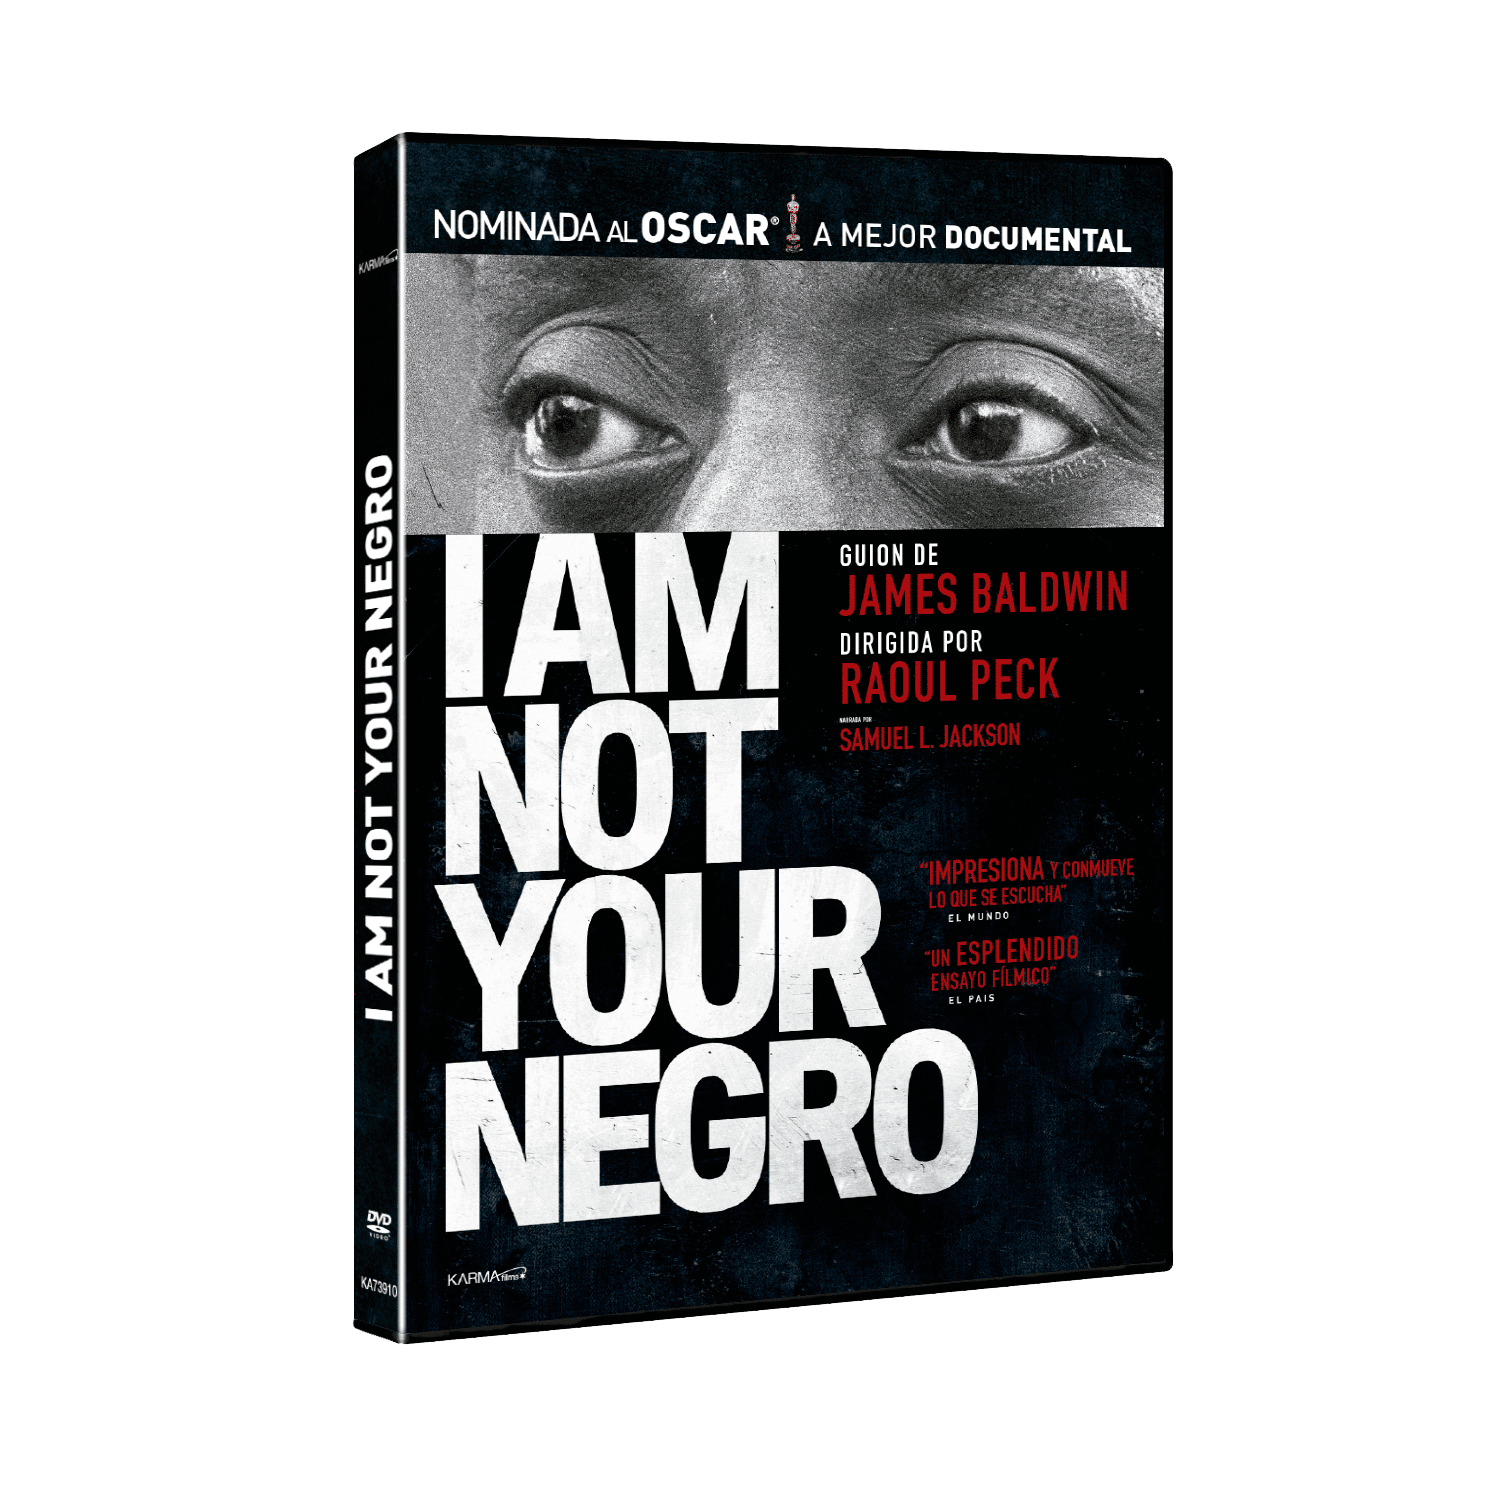 I_AM_NOT_YOUR_NEGRO_DVD